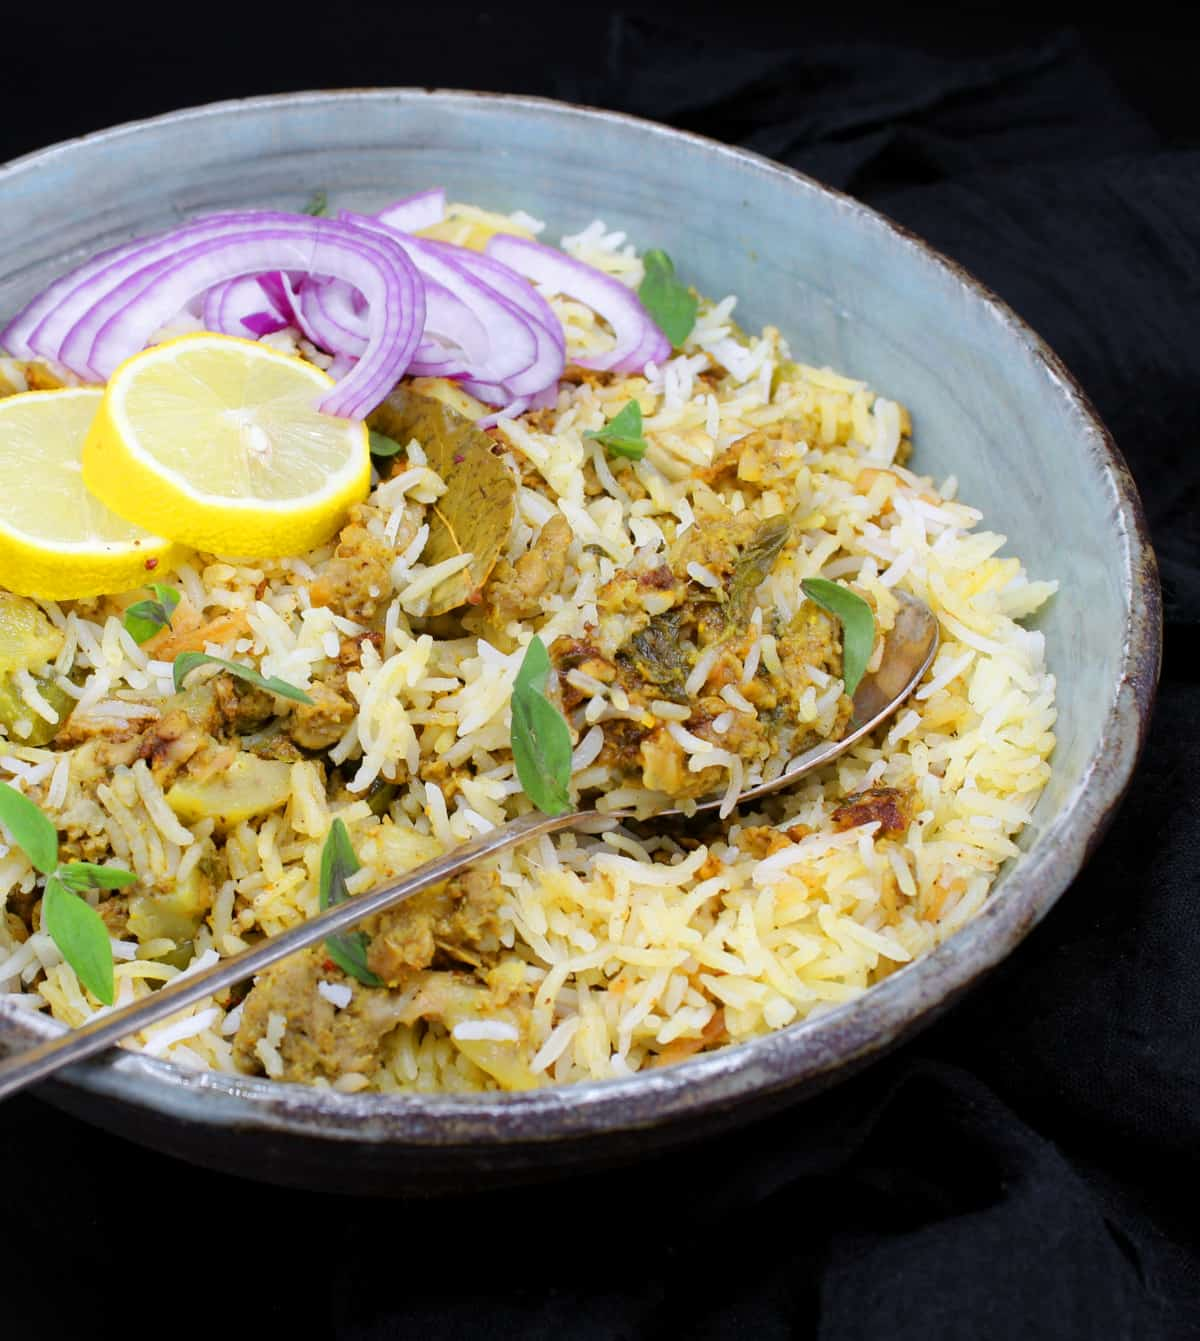 Front partial shot of a bowl of keema biryani, an Indian rice dish with ground meatless meat and spices, in a glazed bowl with a spoon, lemons and sliced onions